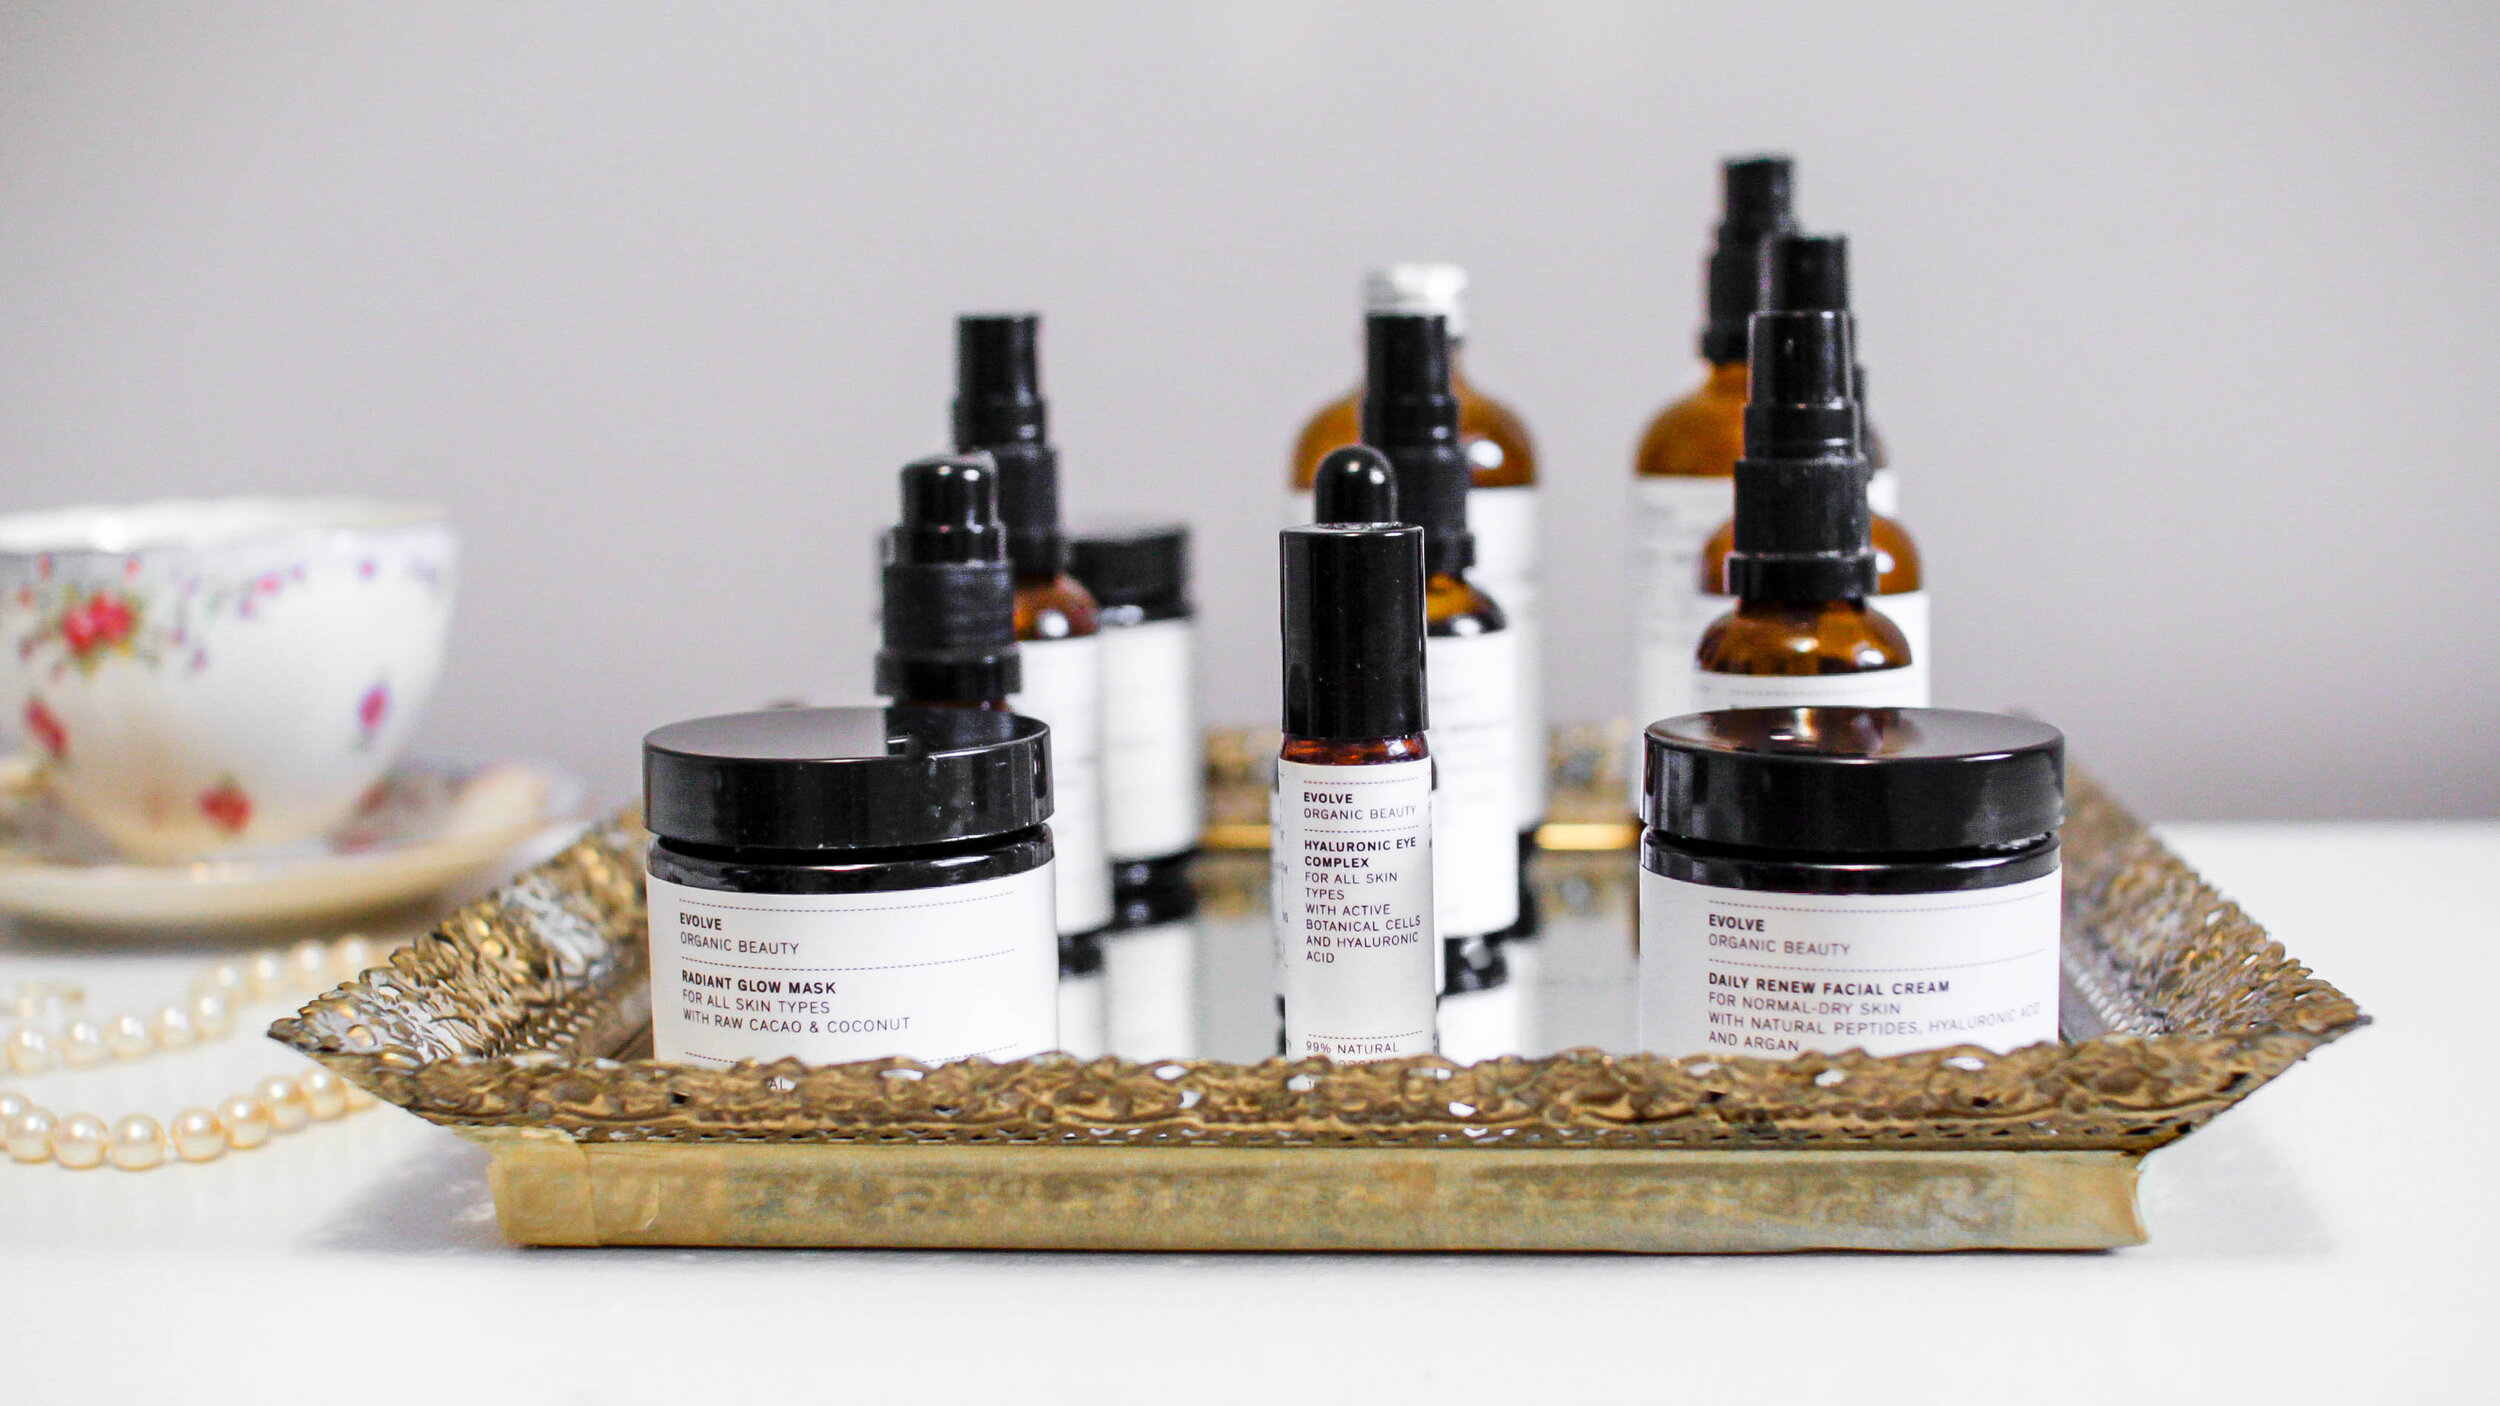 Evolve Beauty UK Skincare routine for sensitive, combination, and acne prone skin